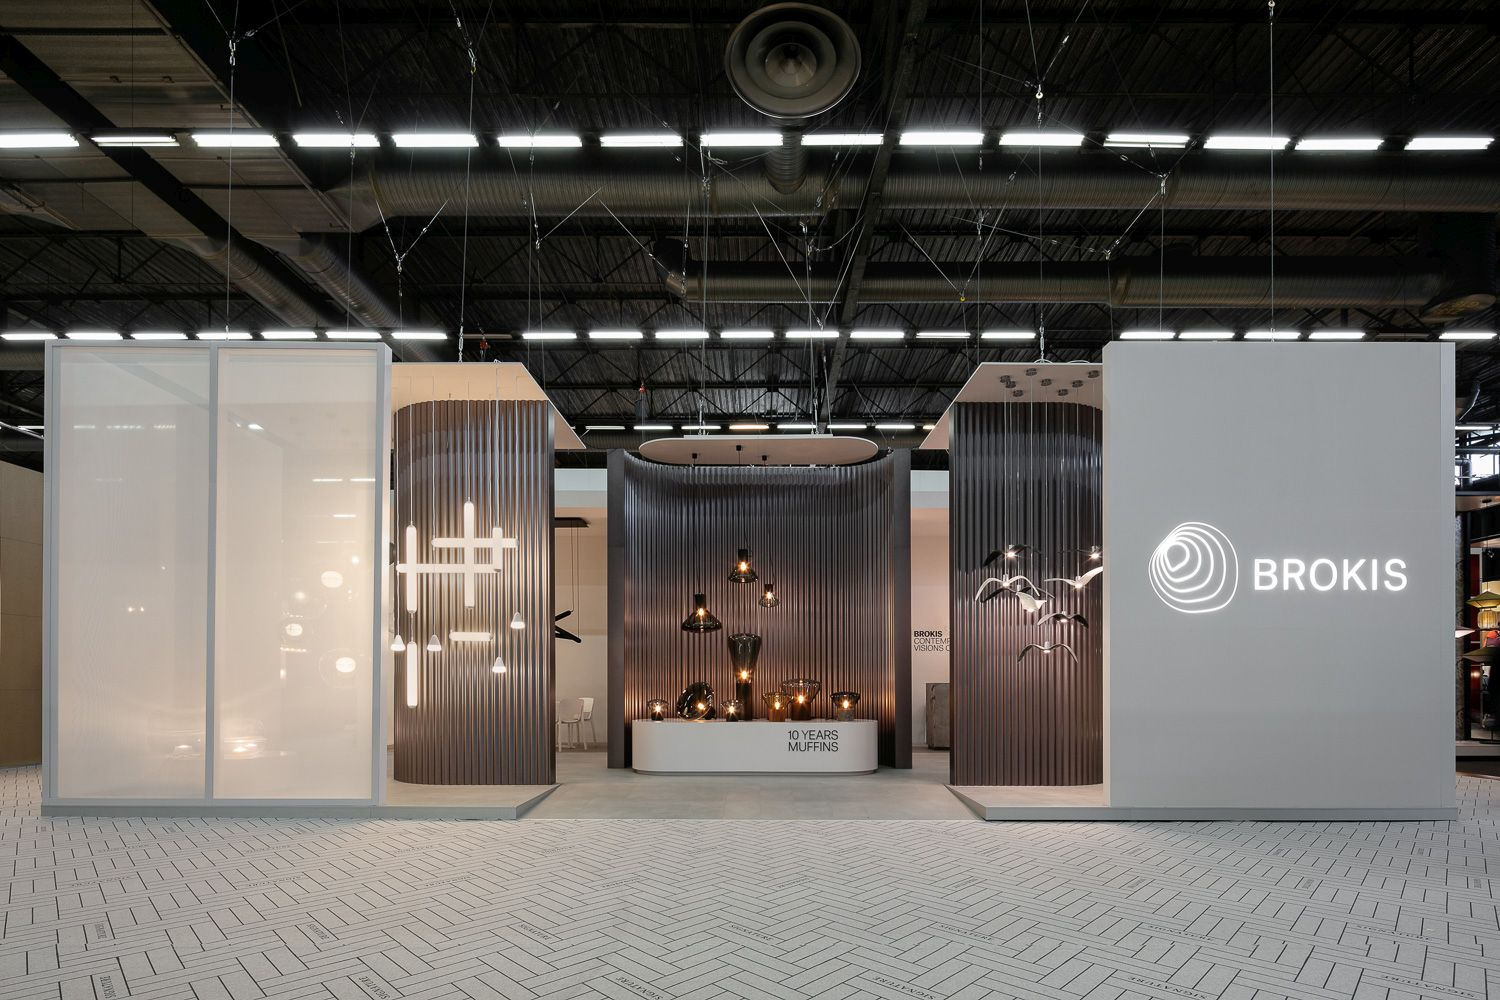 Thank you for visiting our stand at Maison&Objet 2020